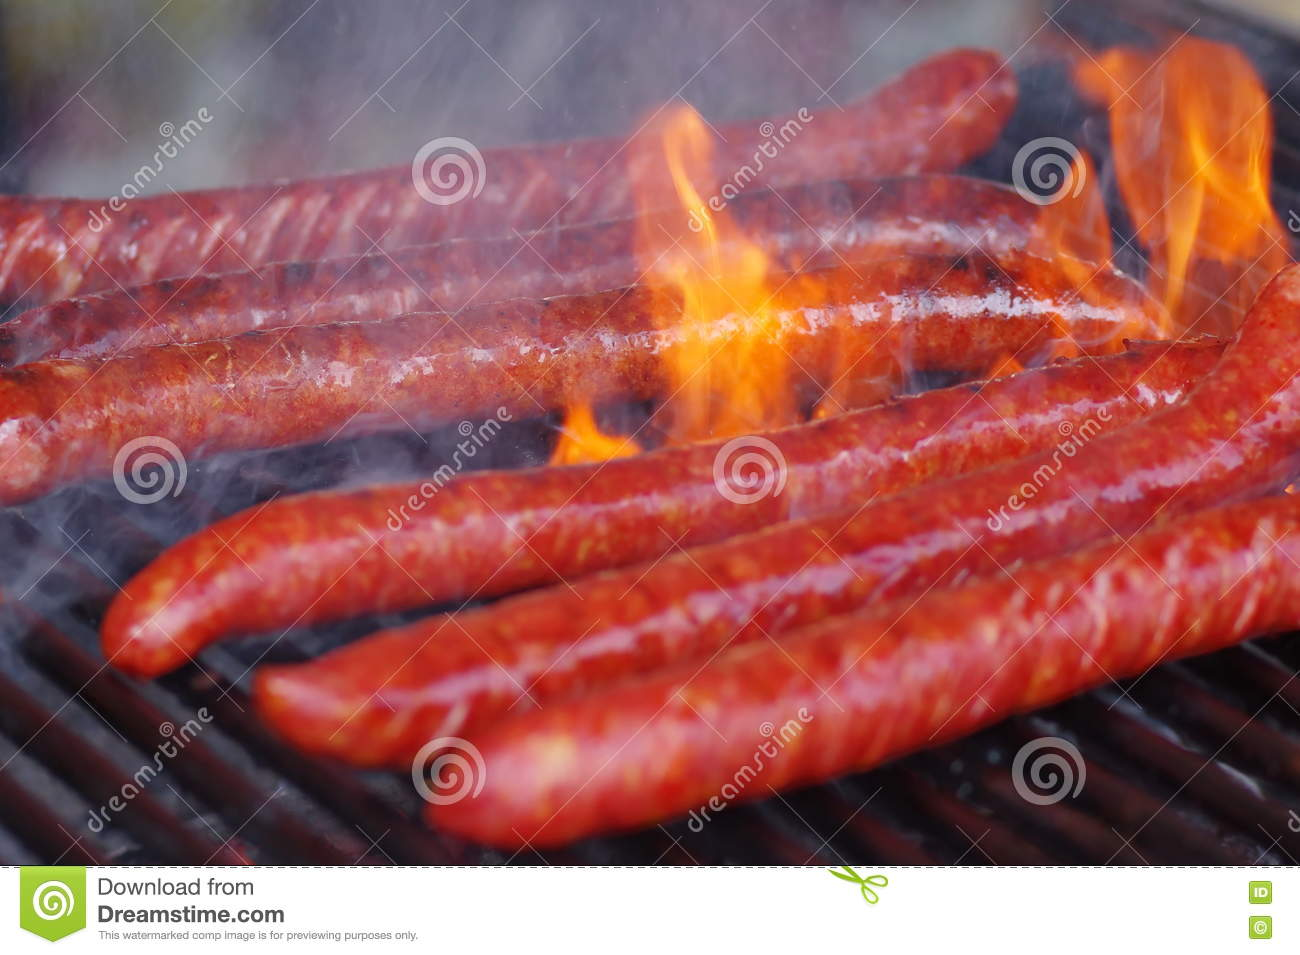 Sausage on the grill close up